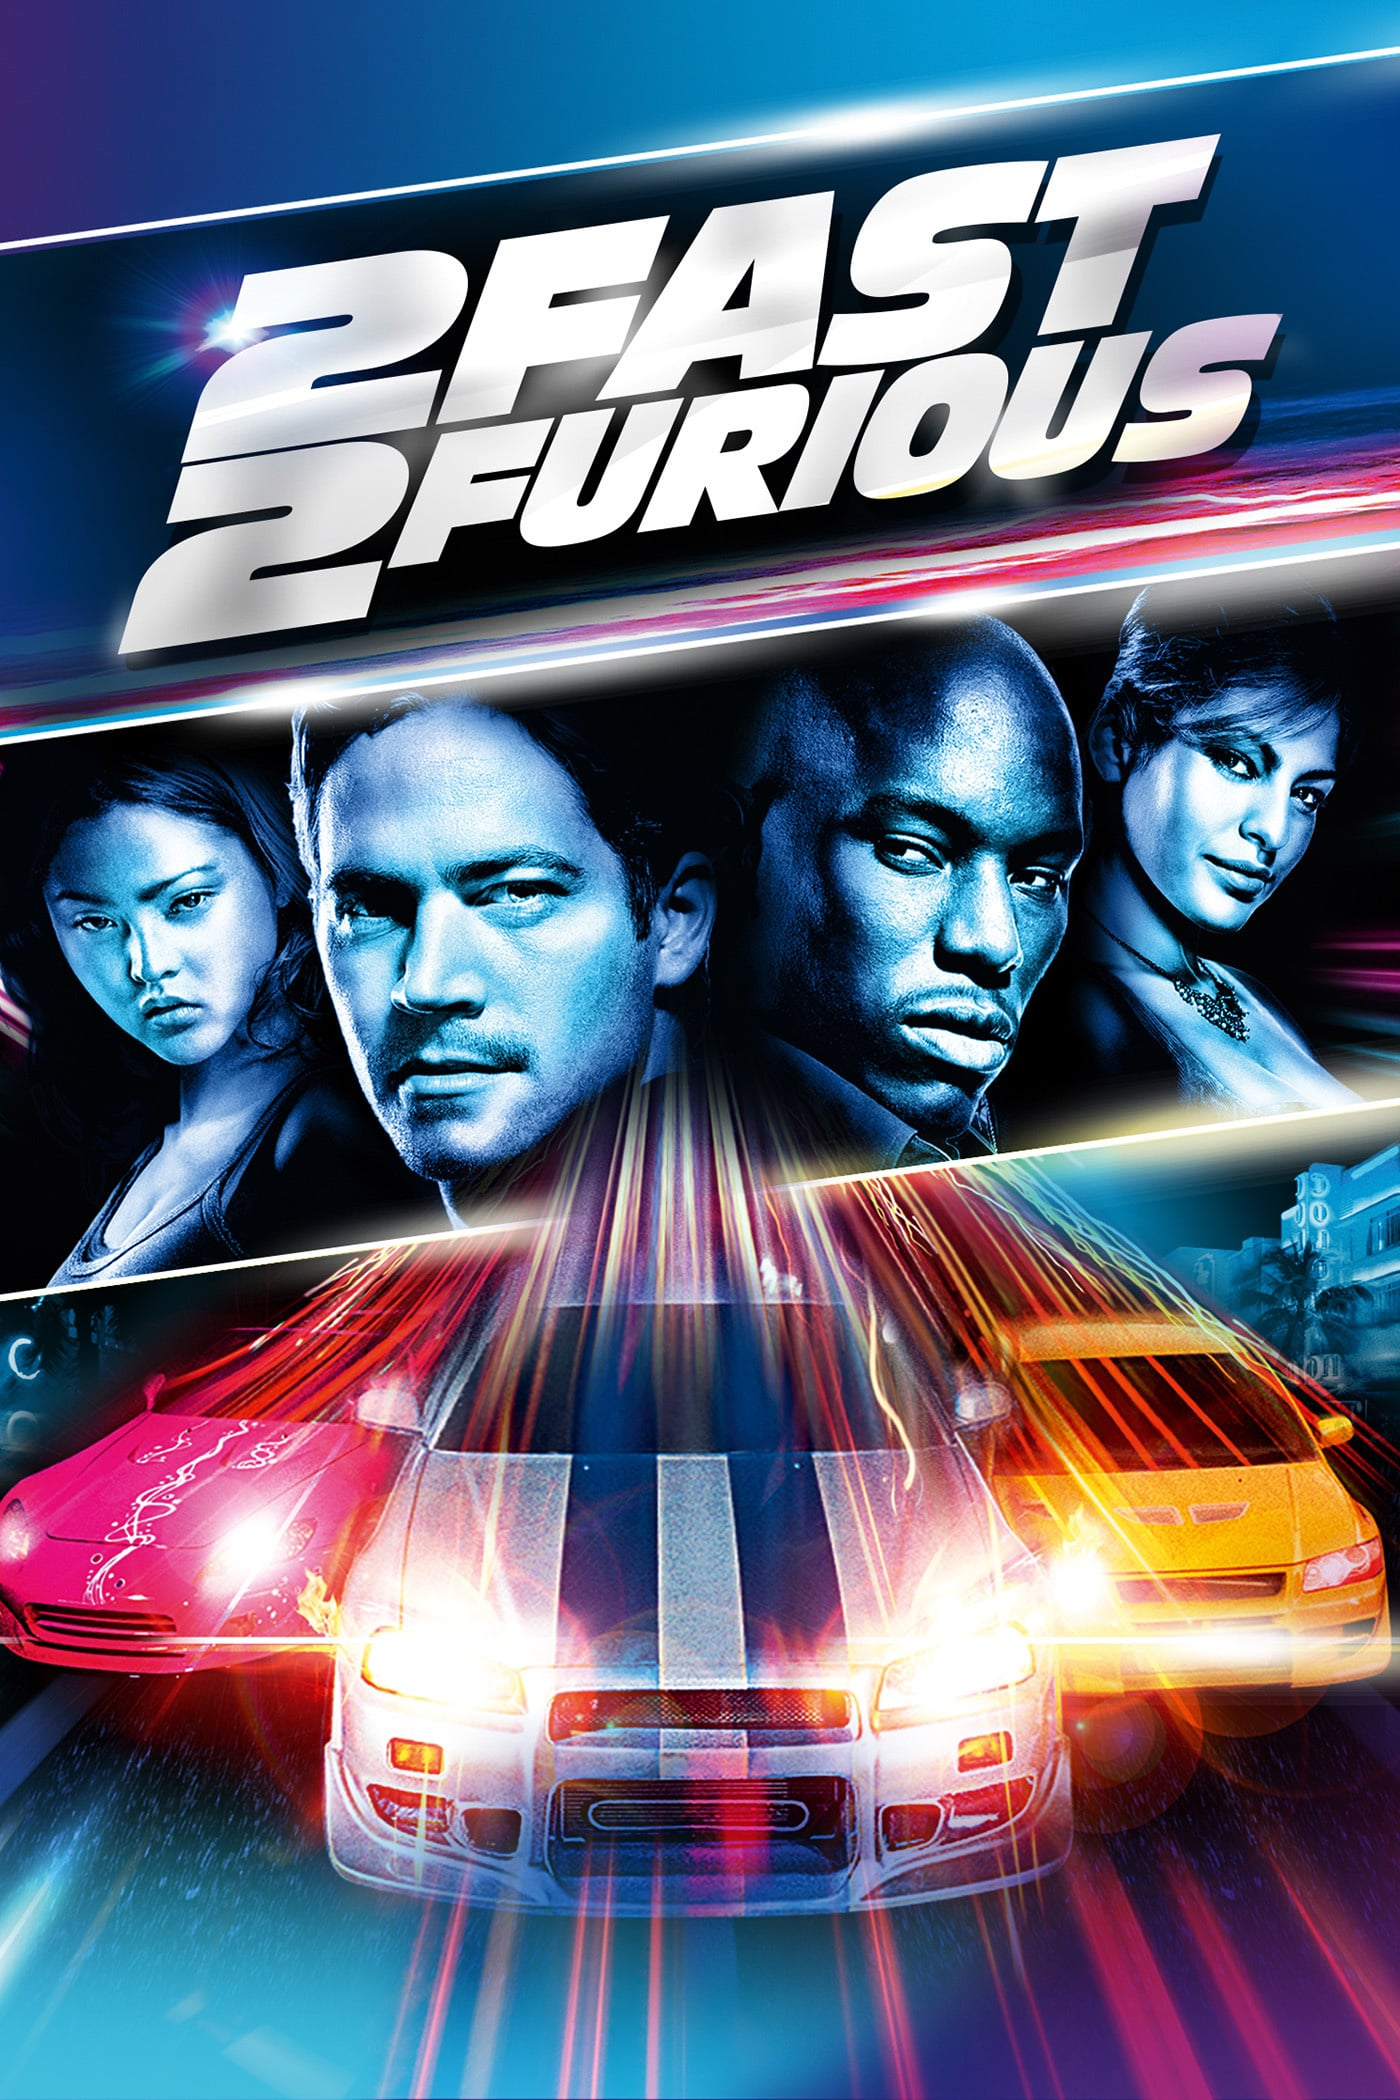 2 fast 2 furious the fast and the furious wiki fandom powered by rh fastandfurious fandom com